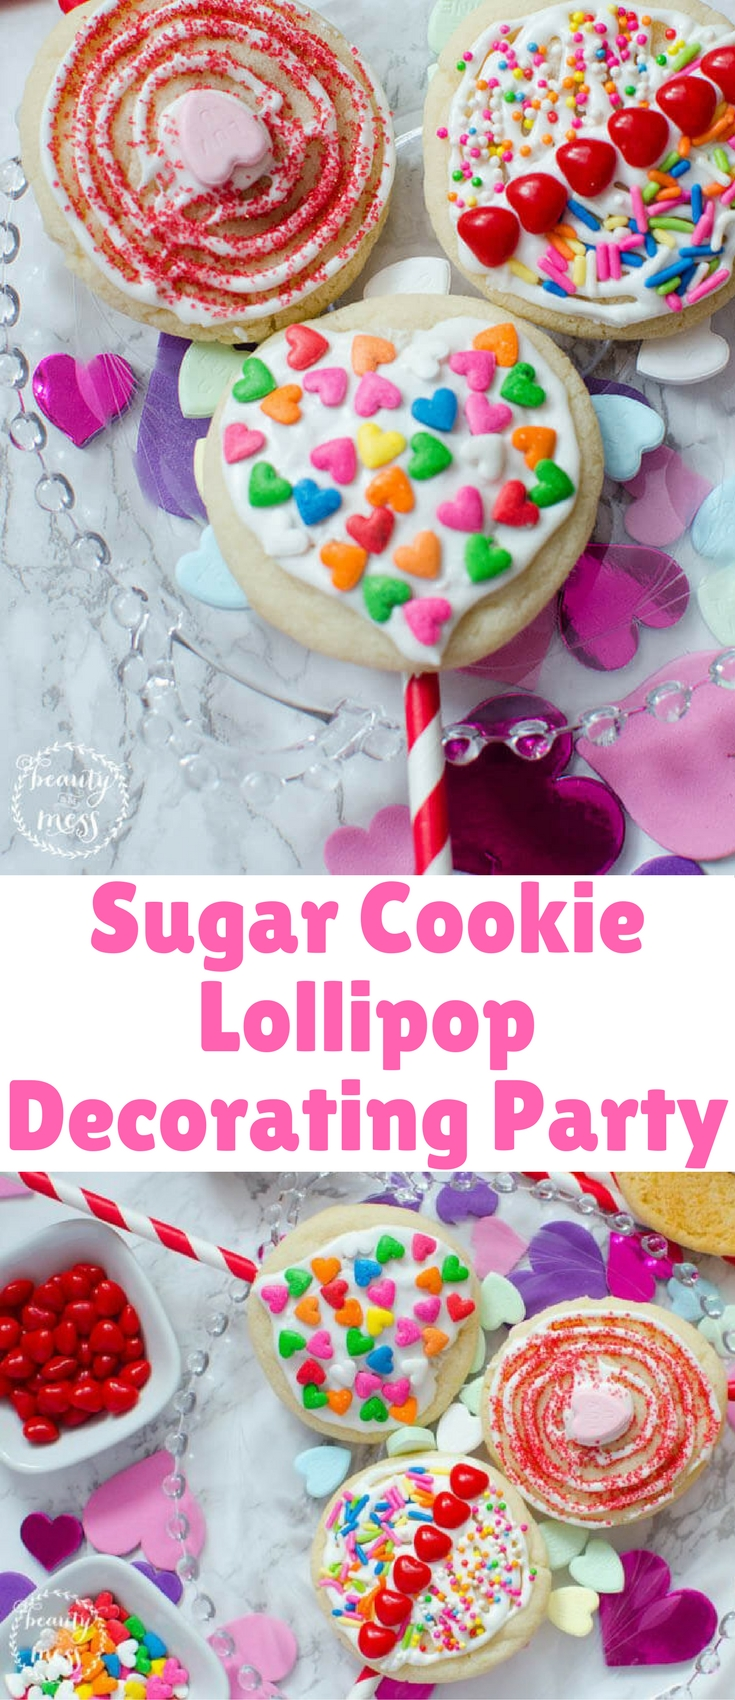 Looking for a fun spin that incorporates a love for cookies and lollipops? The sugar cookie lollipop is a great mashup of both!